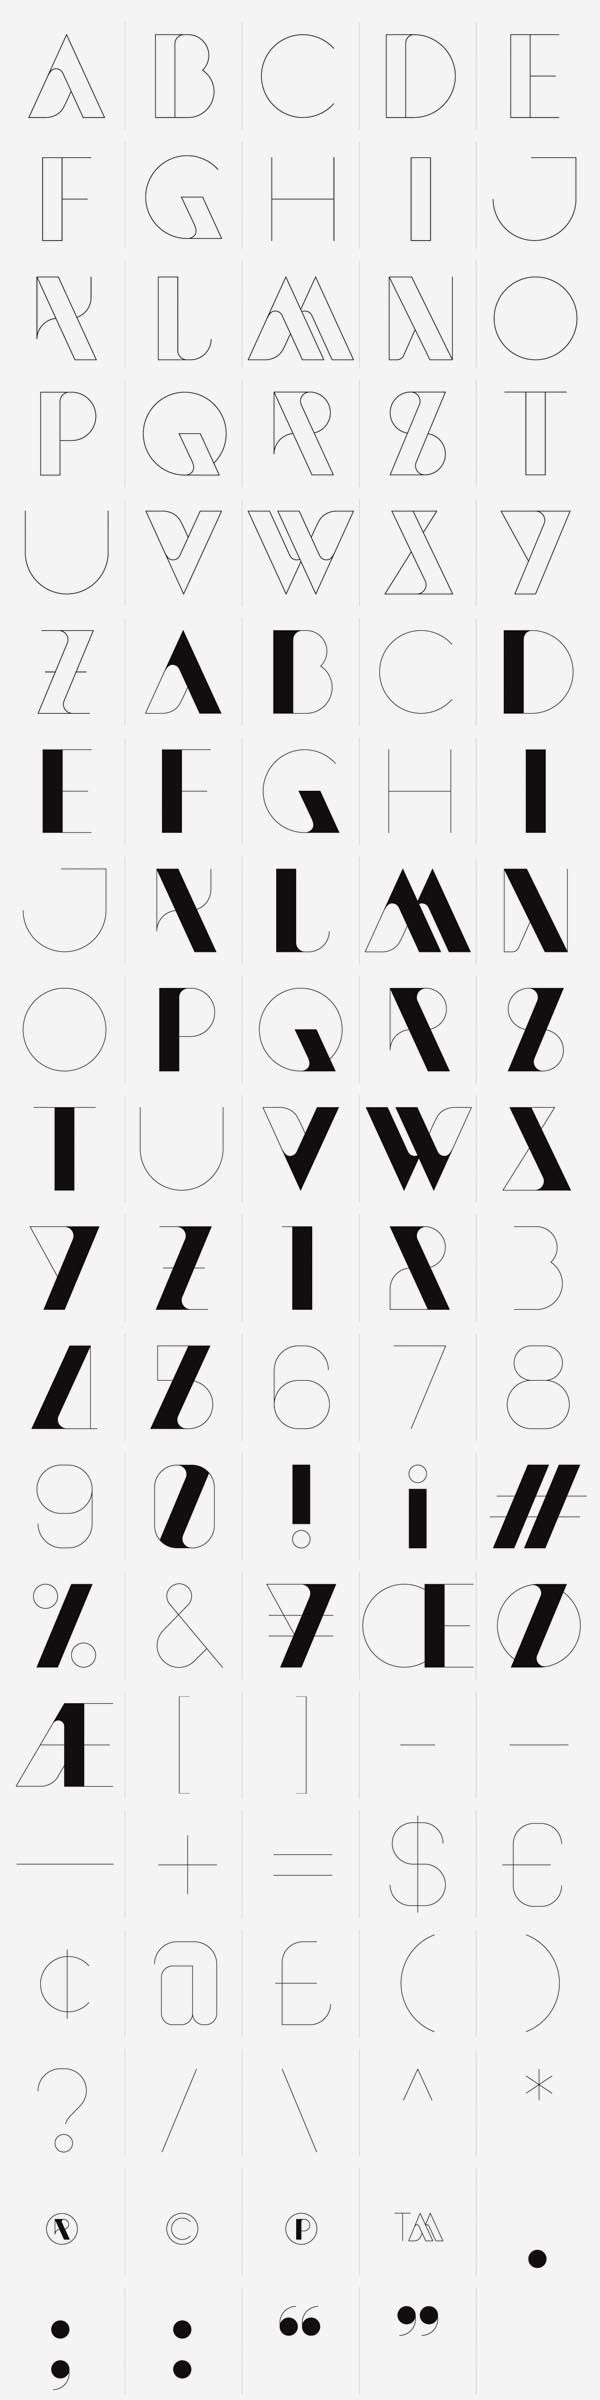 Loves Data Loves || New Modern Typeface by Sawdust for HypeForType || #type #typeface #font